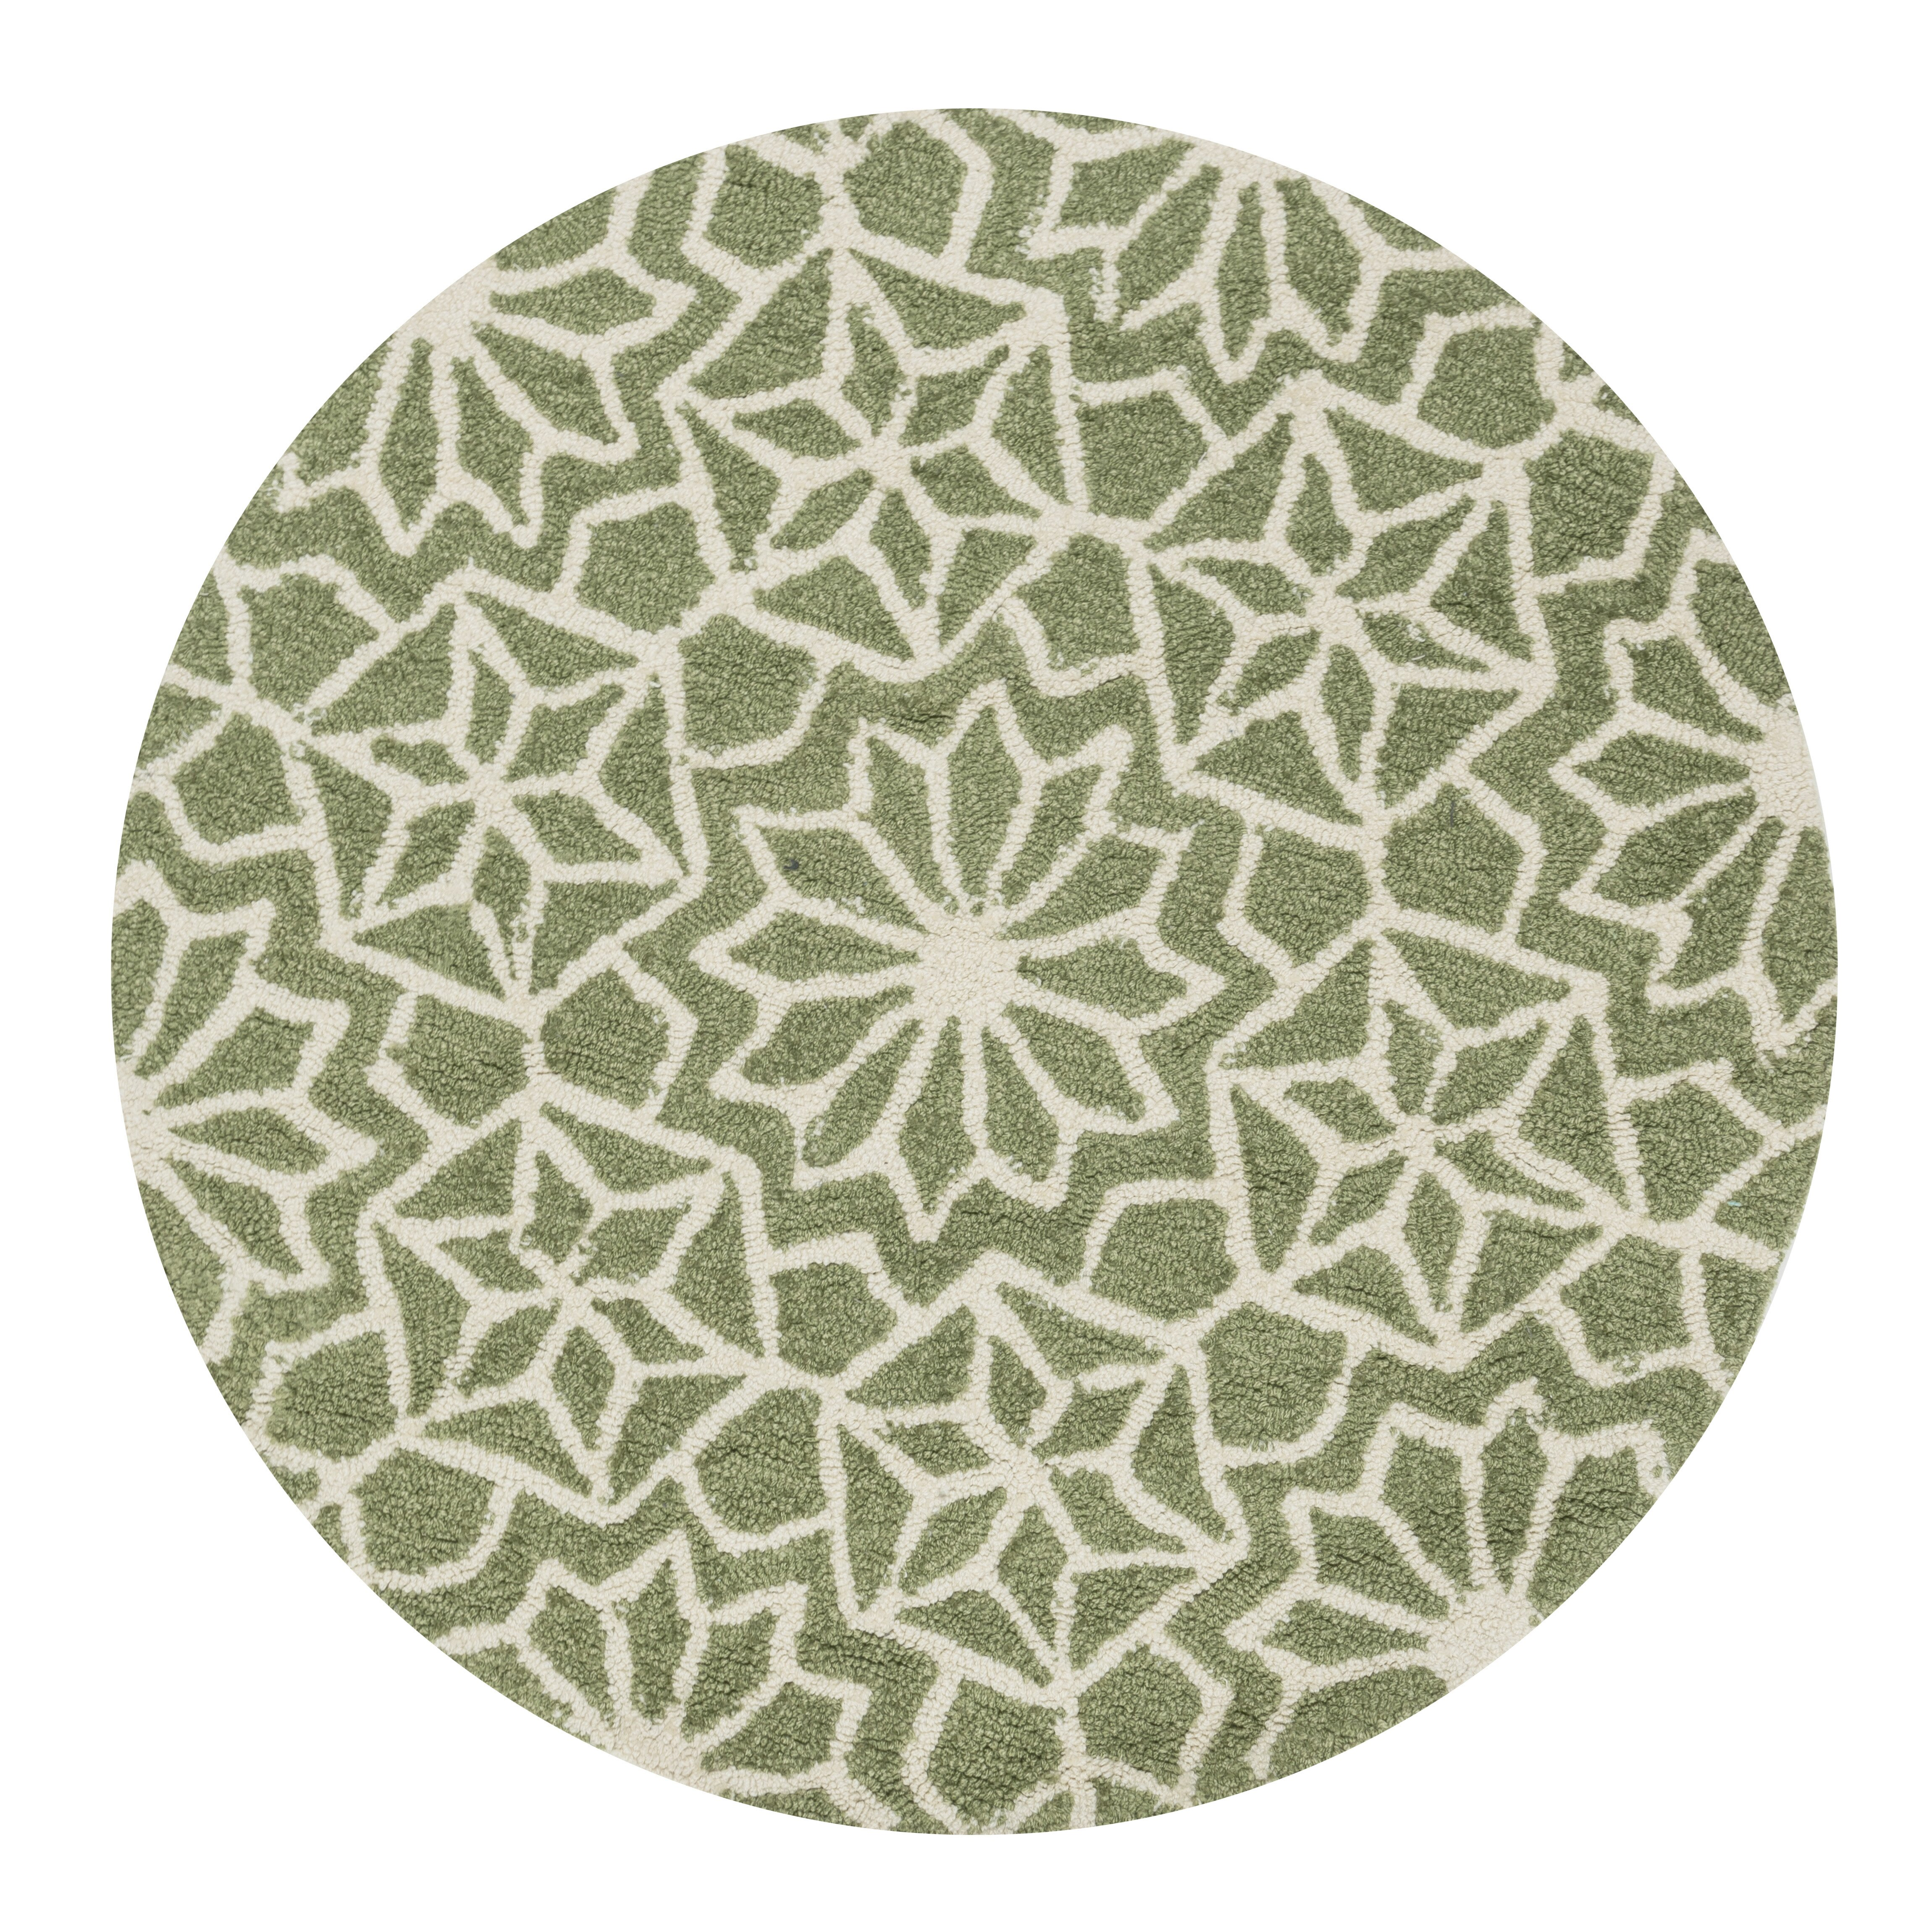 Loloi Rugs Francesca Hand-Woven Green Floral Area Rug